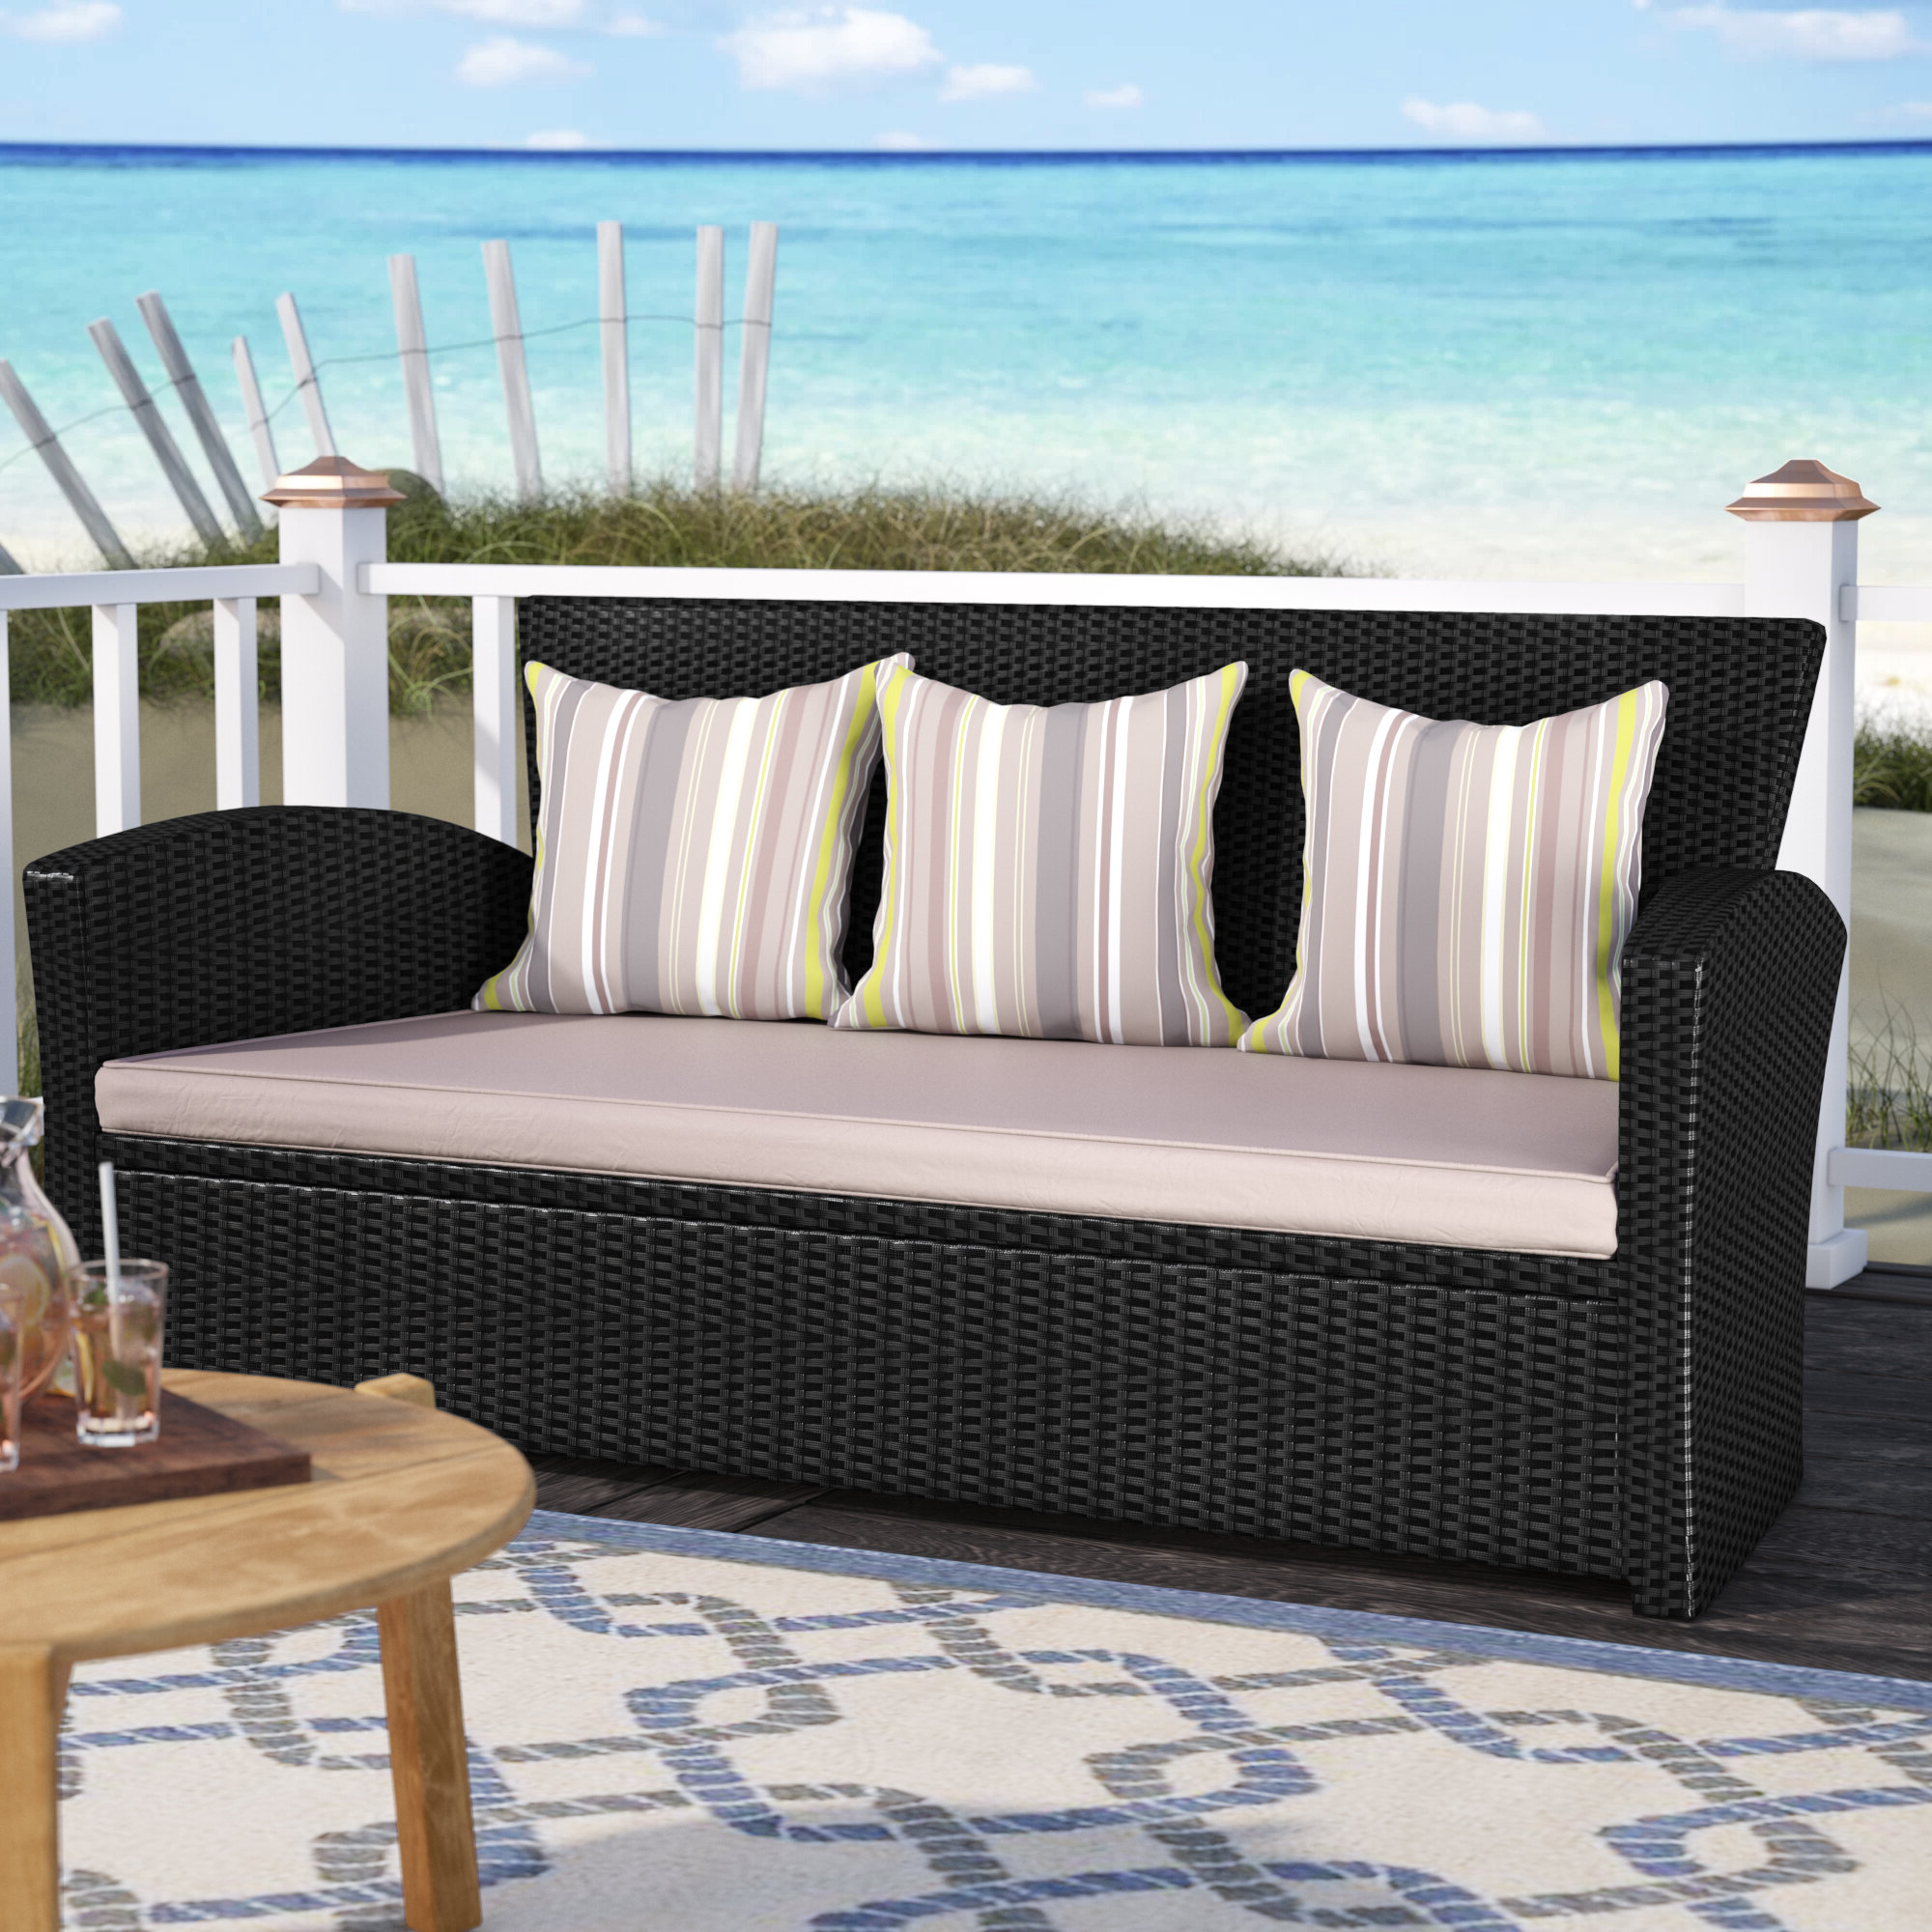 Valetta Patio Sofa With Cushions Throughout Most Recently Released Loggins Patio Sofas With Cushions (Gallery 9 of 20)